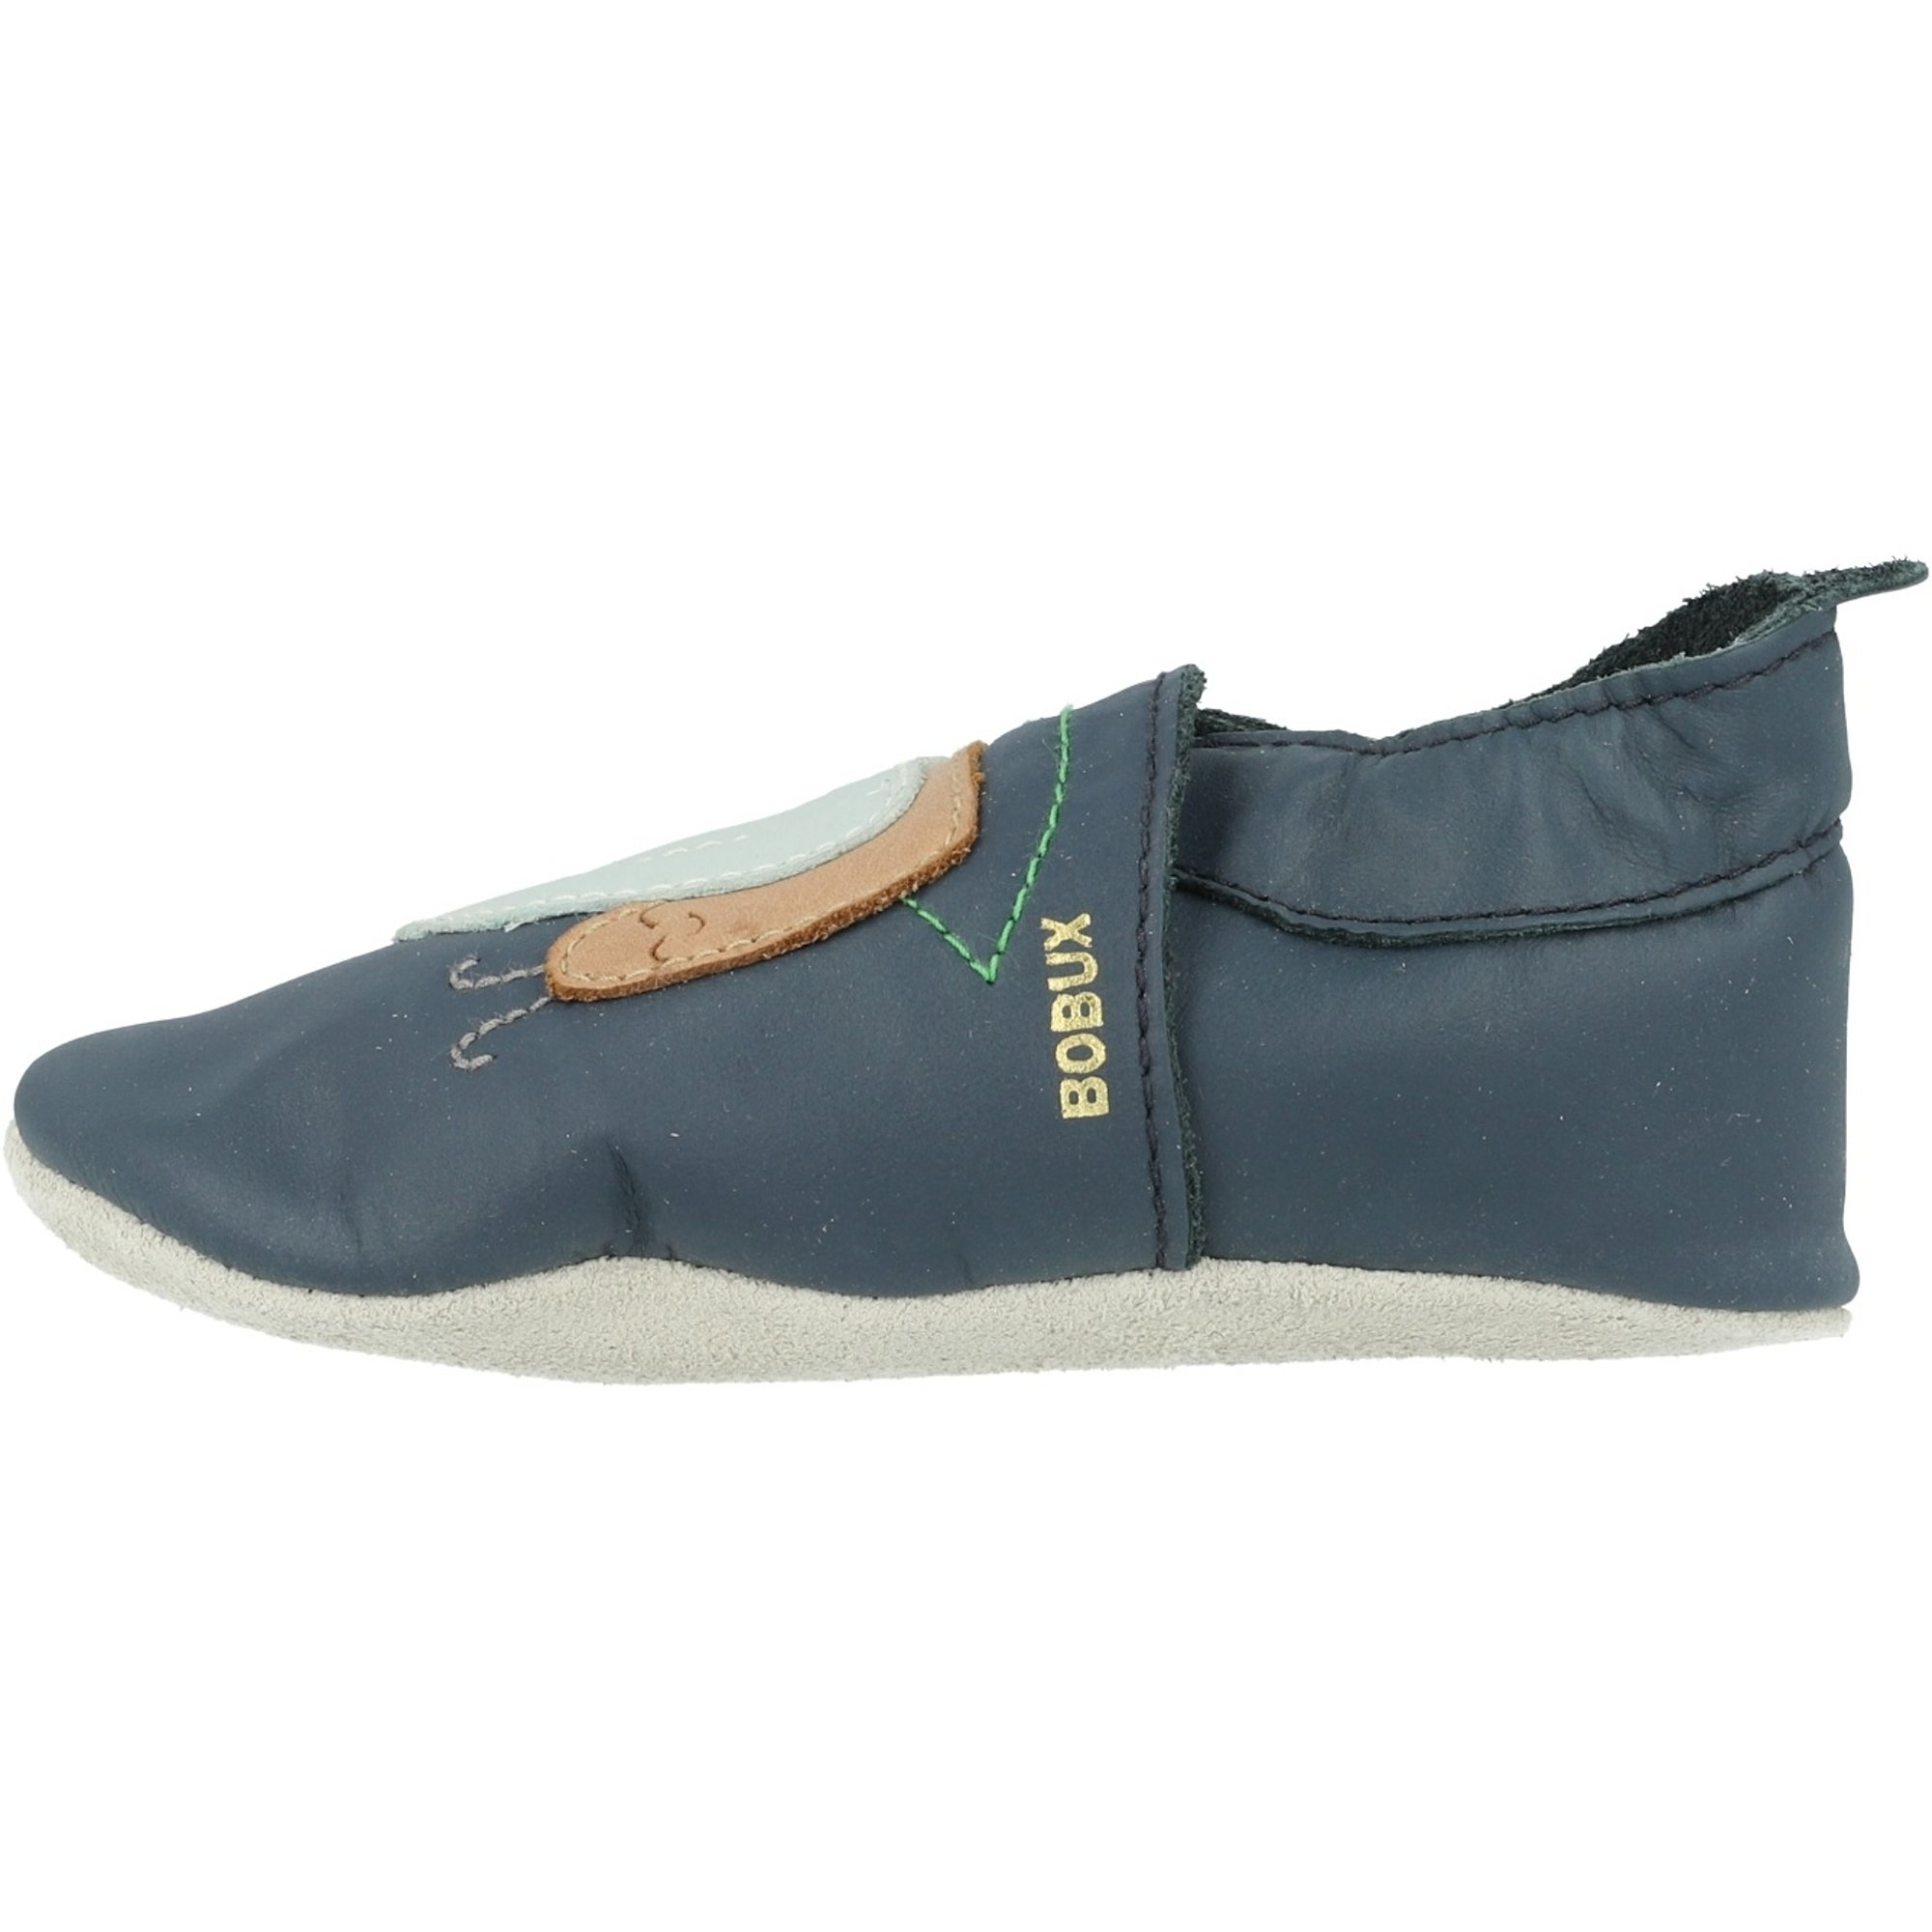 Bobux Soft Sole Snail Navy Leather Baby Soft Soles Shoes